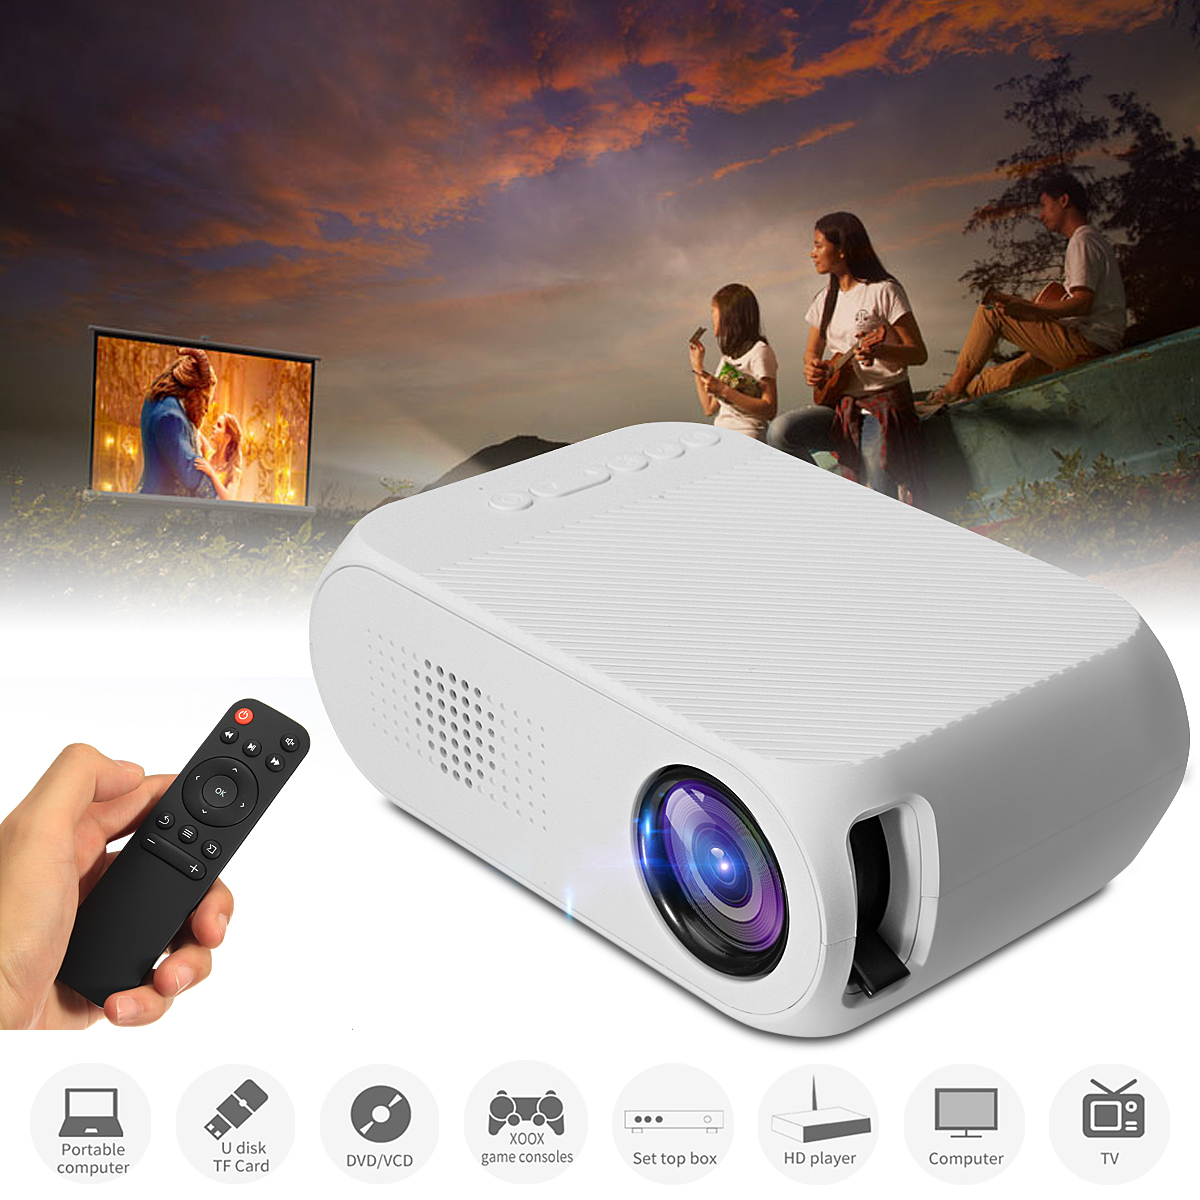 YG320 1080P Mini Portable LED Projector 4000 Lumens 23 Languages Home Theater Can read U disk TF card AV connection DVD boxYG320 1080P Mini Portable LED Projector 4000 Lumens 23 Languages Home Theater Can read U disk TF card AV connection DVD box